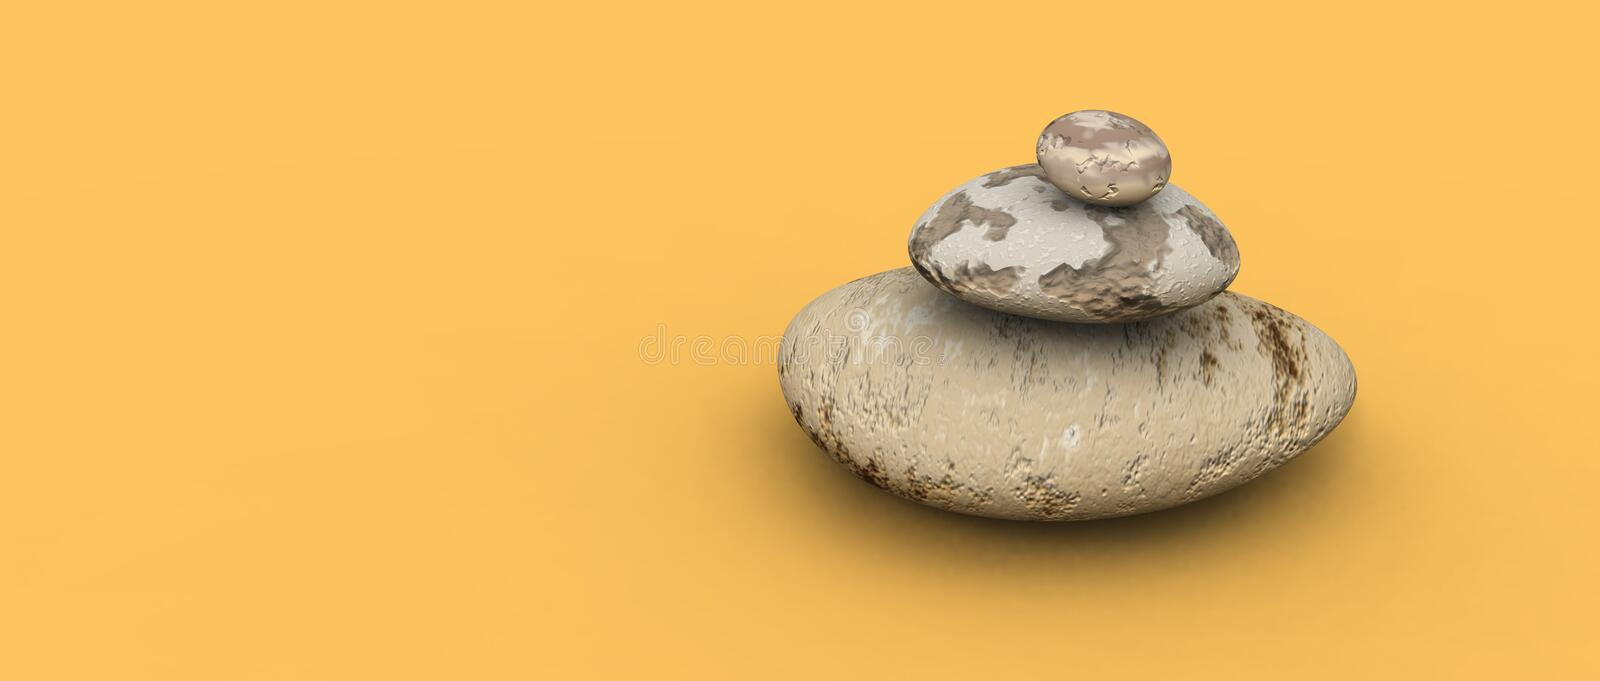 Pebbles stack